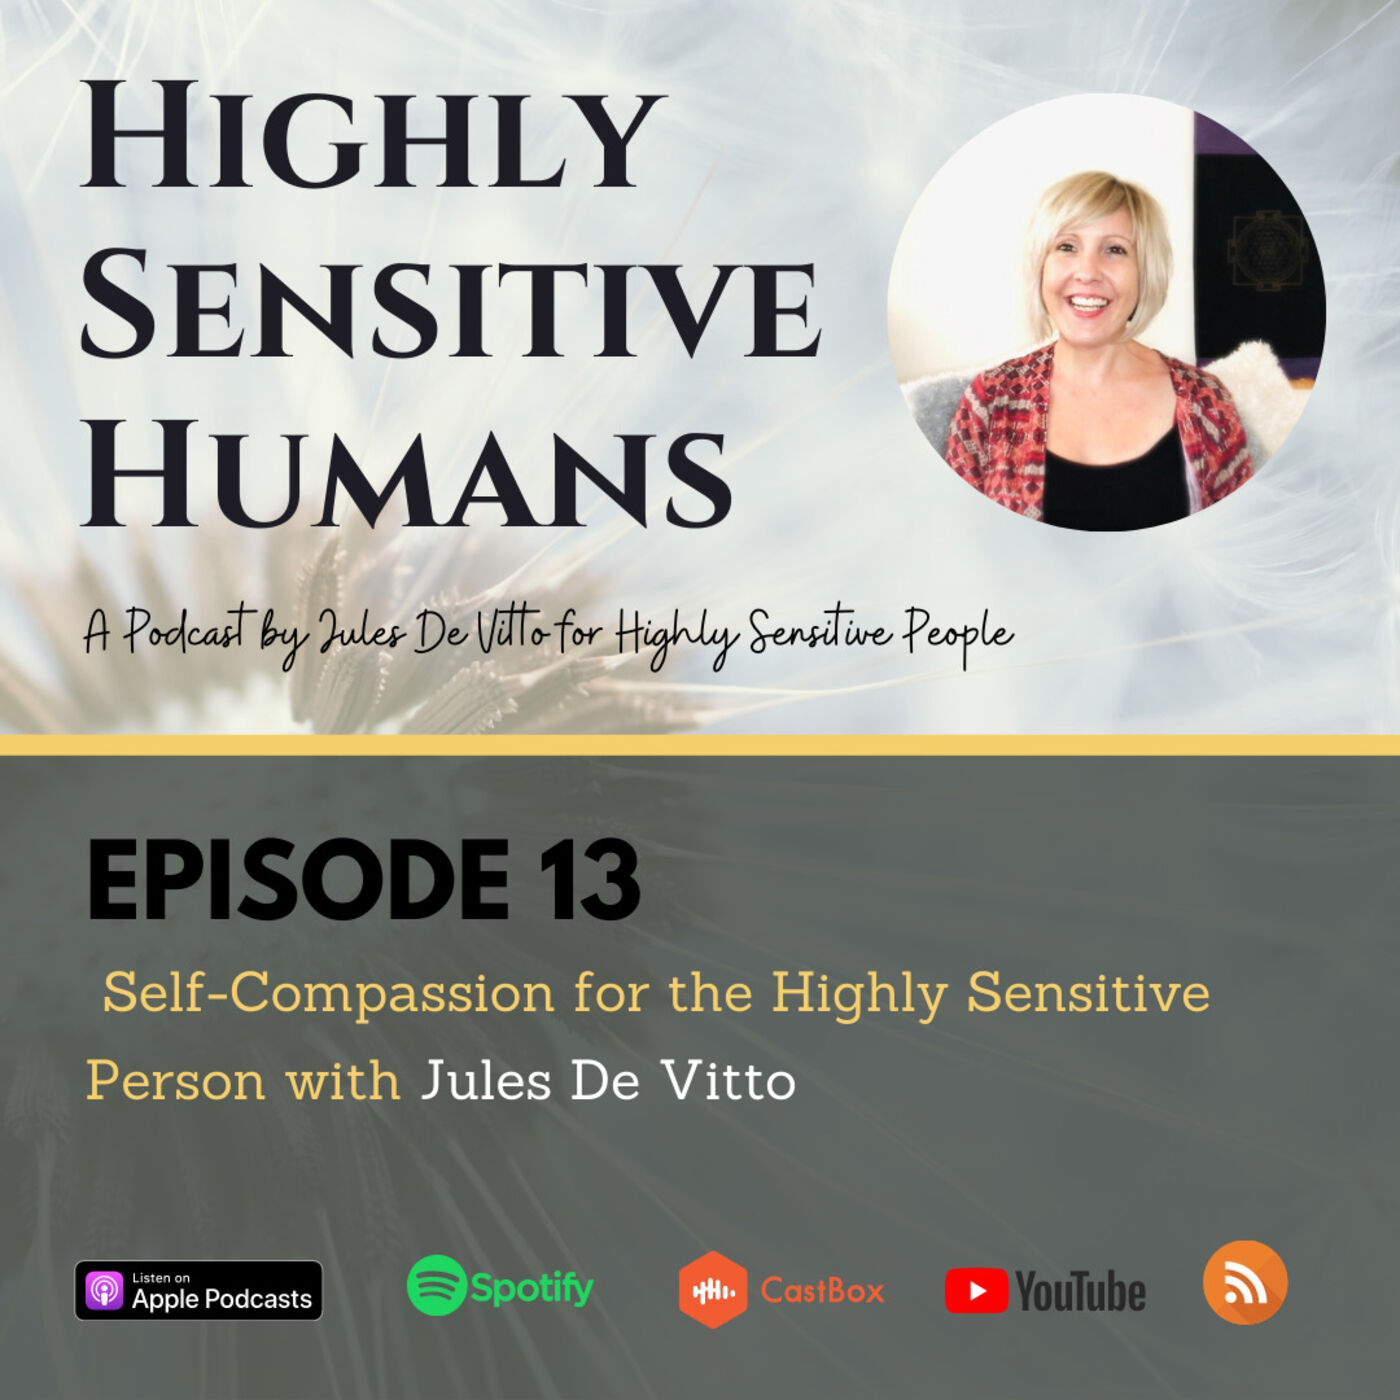 Self-Compassion for the Highly Sensitive Person